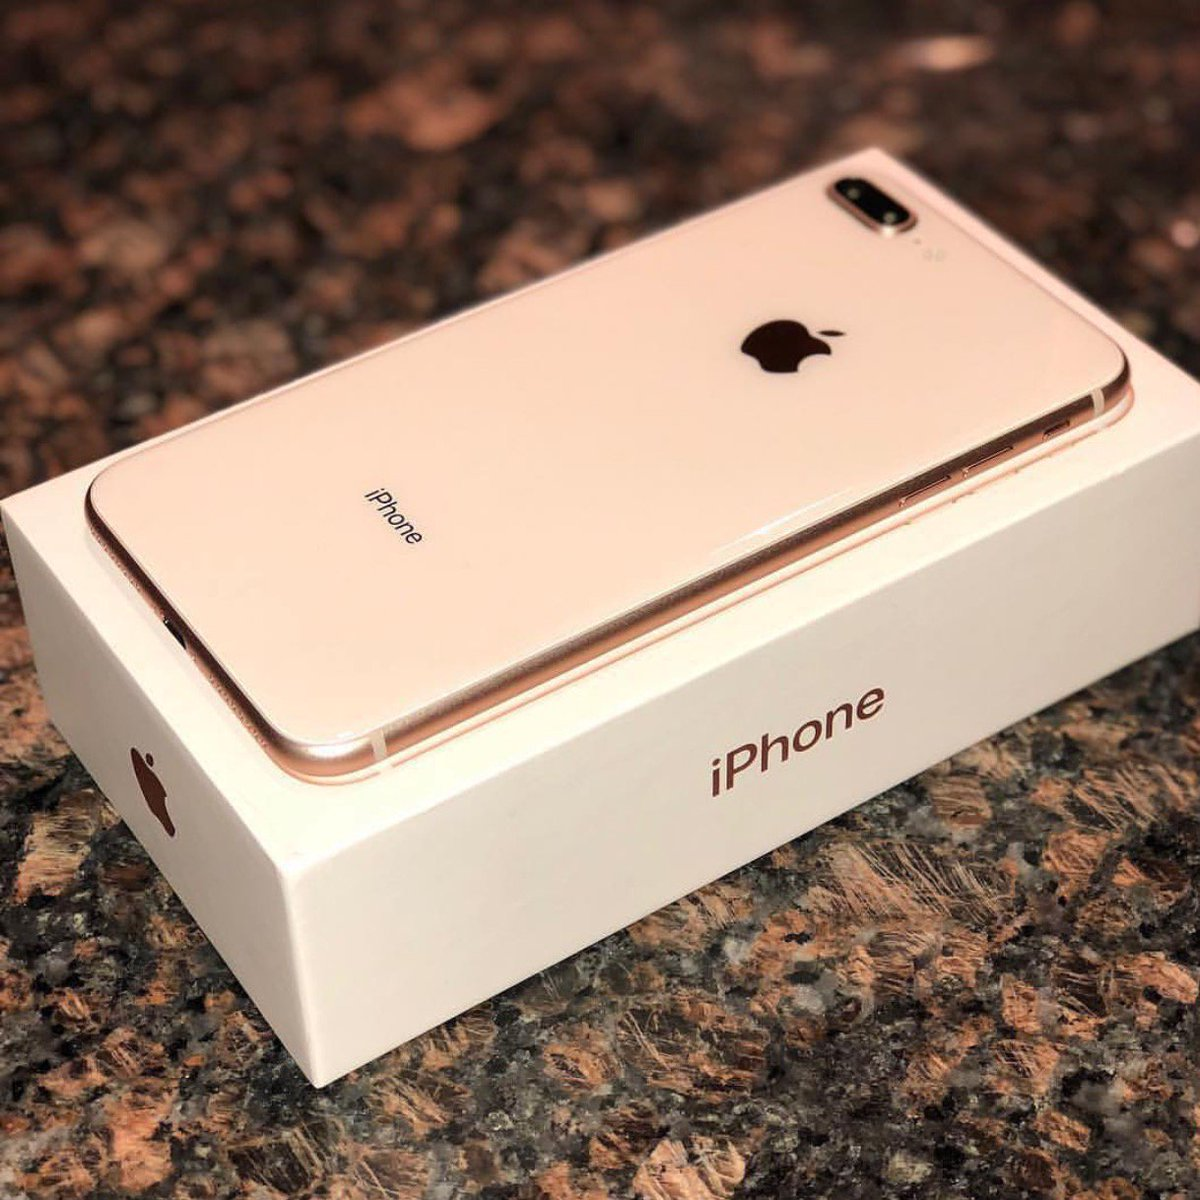 Iphone 8 Plus Unboxing Phone Reviews News Opinions About Phone